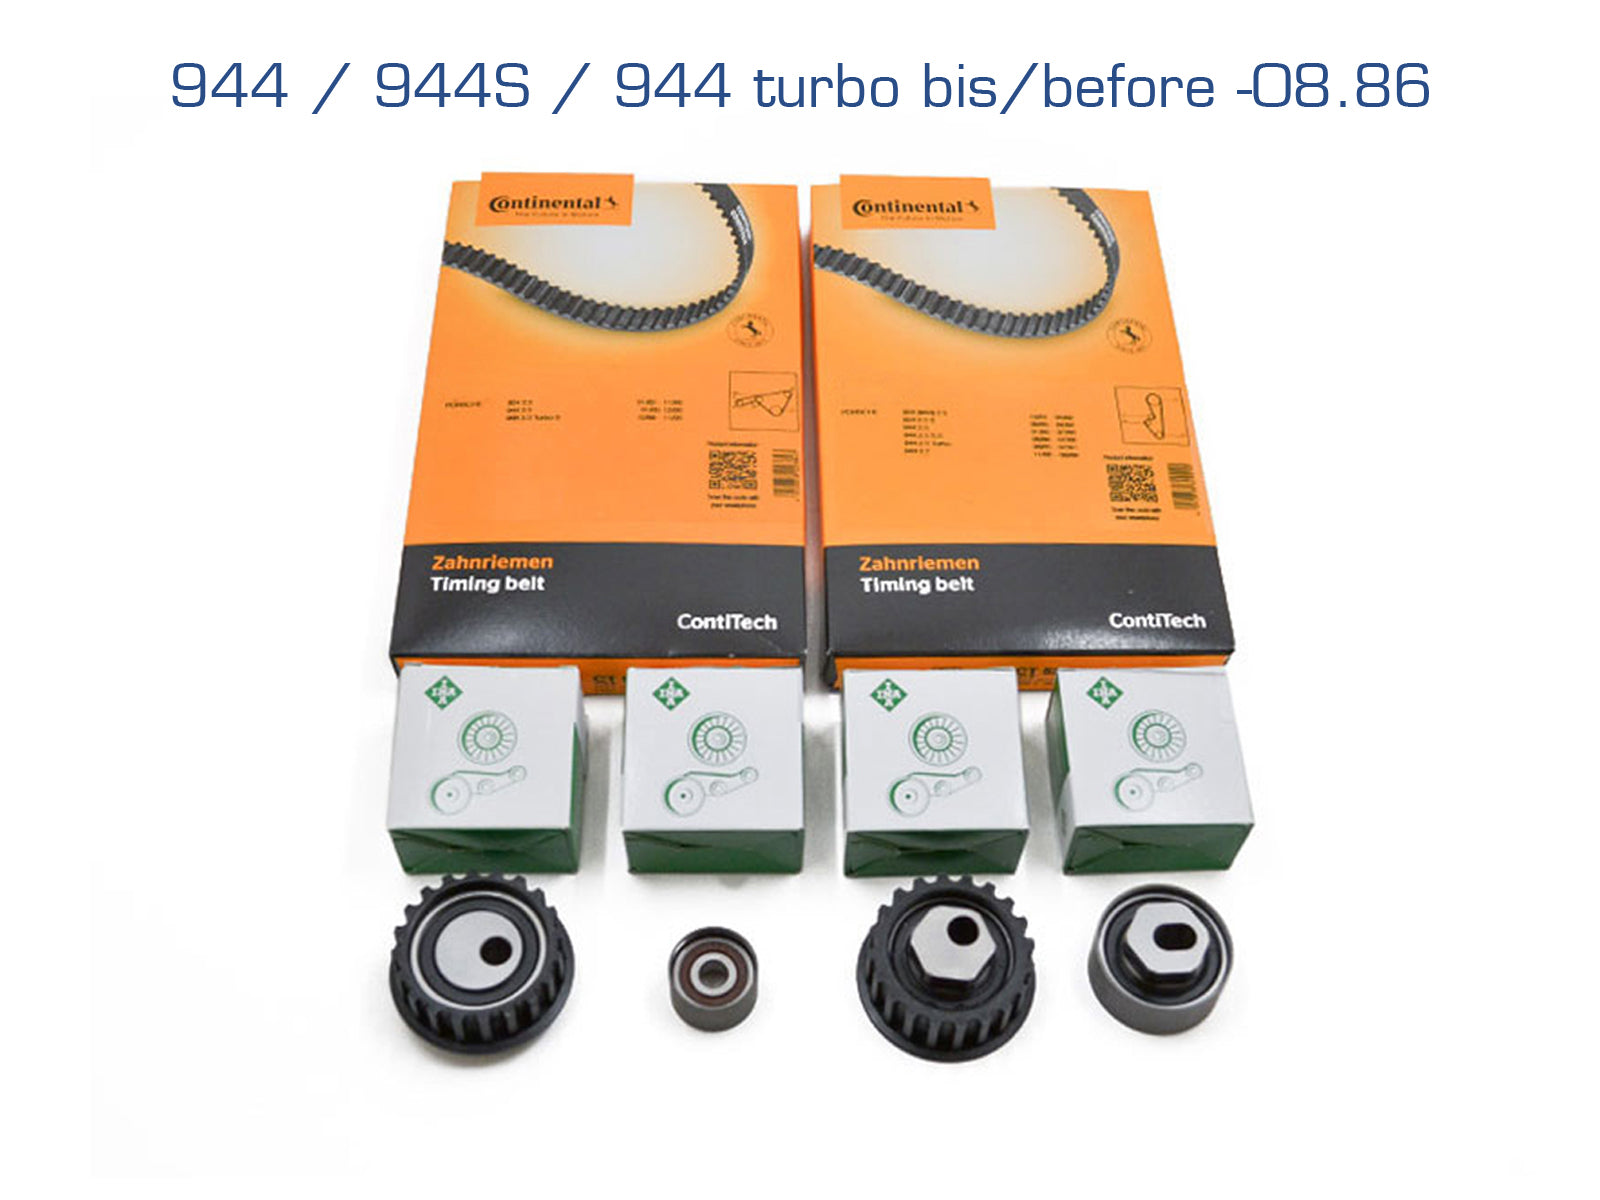 Porsche 924S / 944 / 944 turbo 2.5 to -'87 cam Timing balance Belt Kit - Porsche Spares UK Ltd